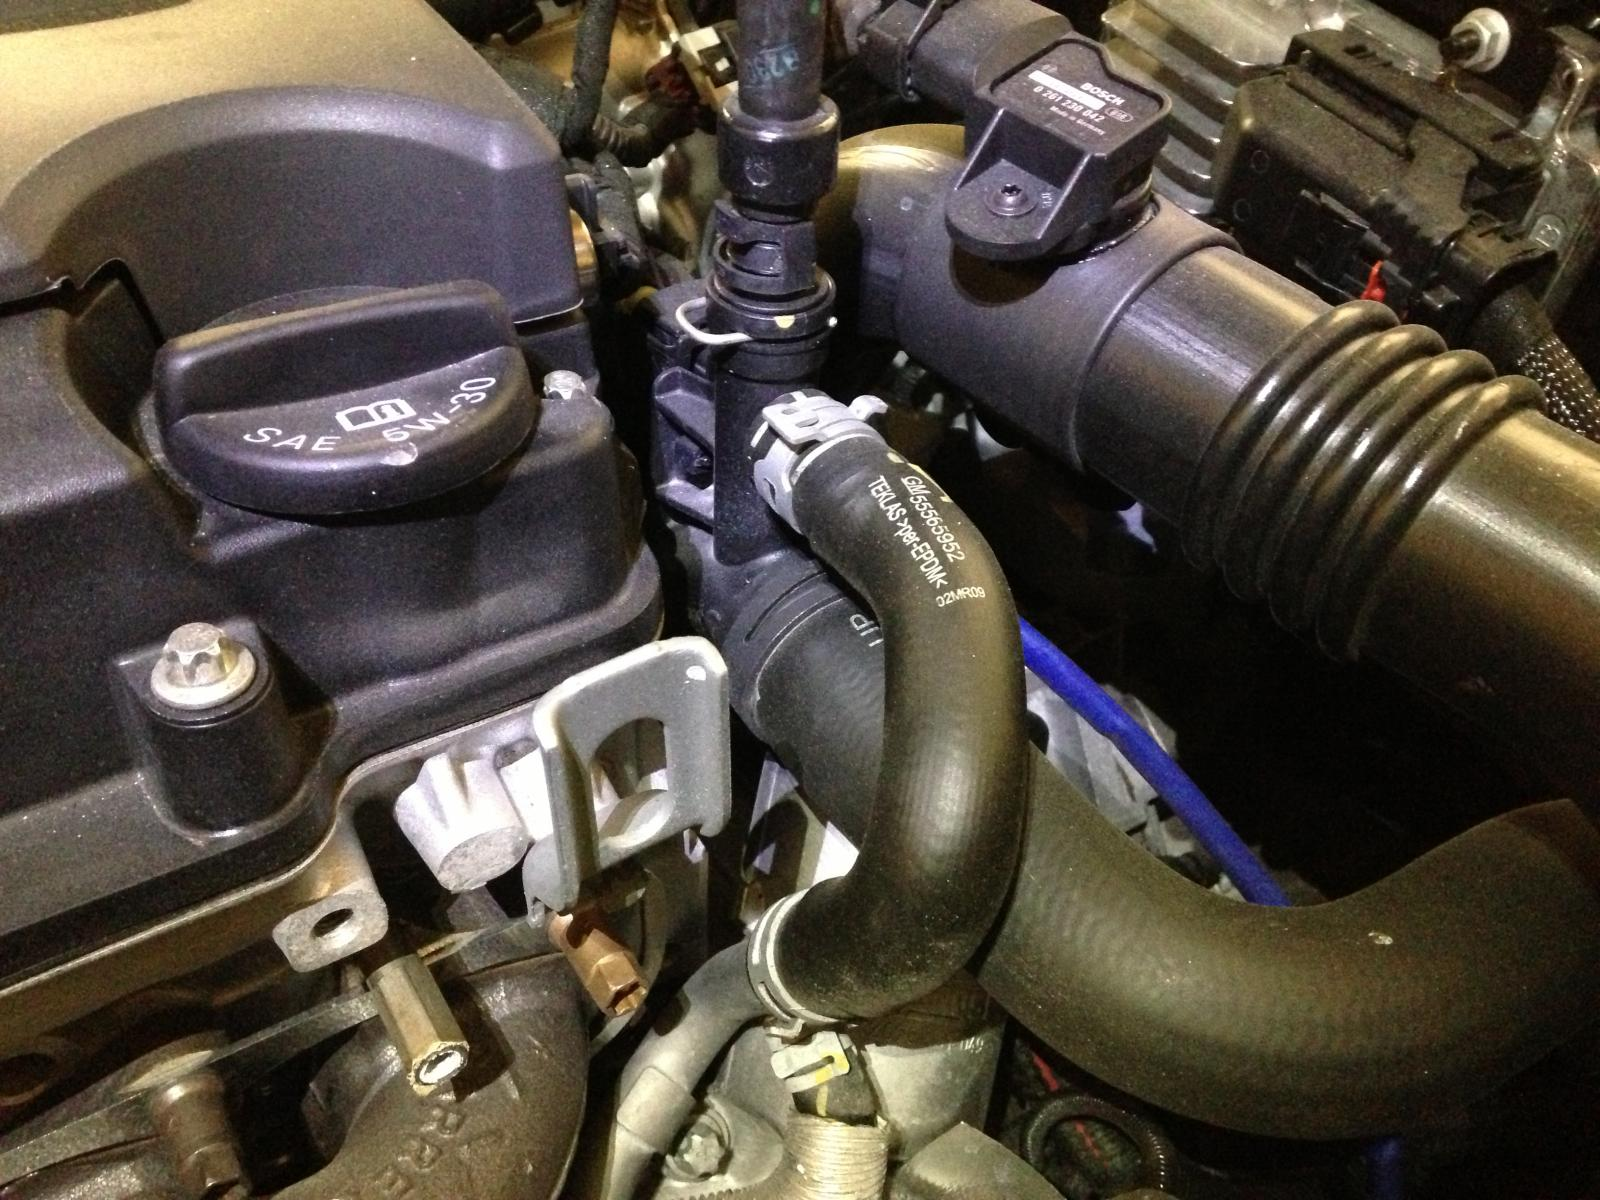 2012 Cruze Ltz Antifreeze Leak 2011 Chevy Eco Also013